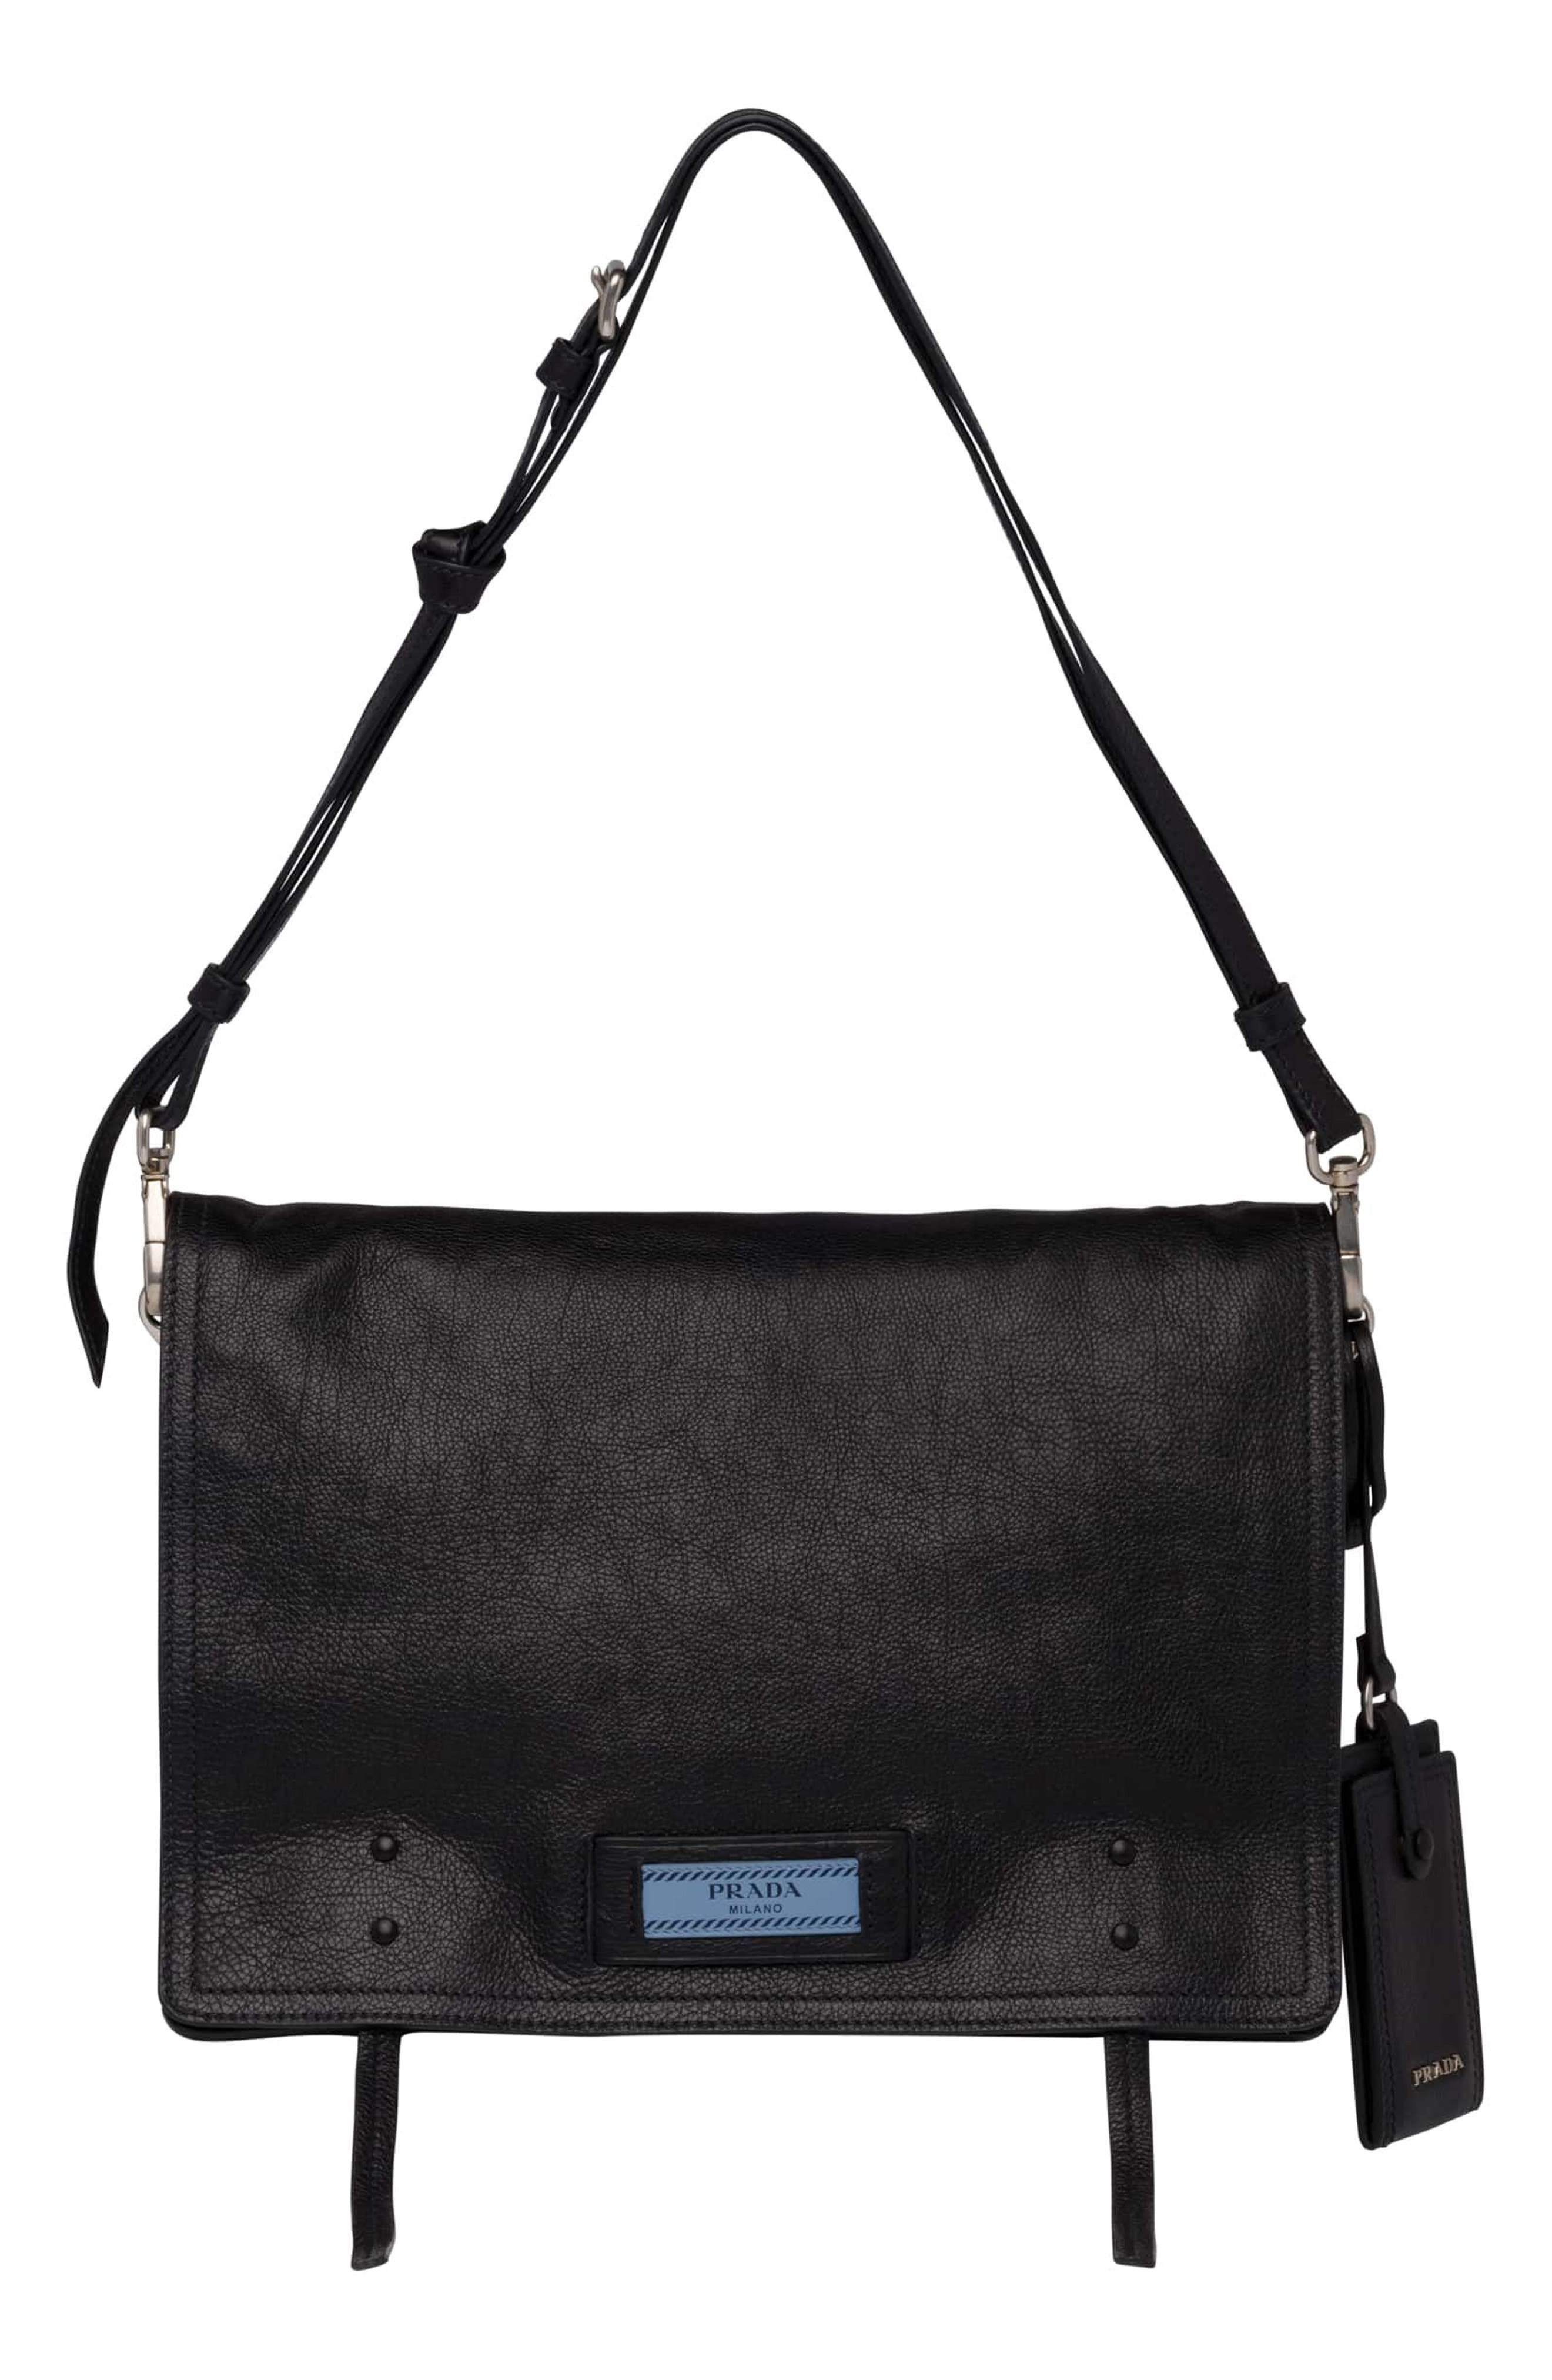 Cahier Glace Messenger Bag,                             Main thumbnail 1, color,                             Nero/ Astrale